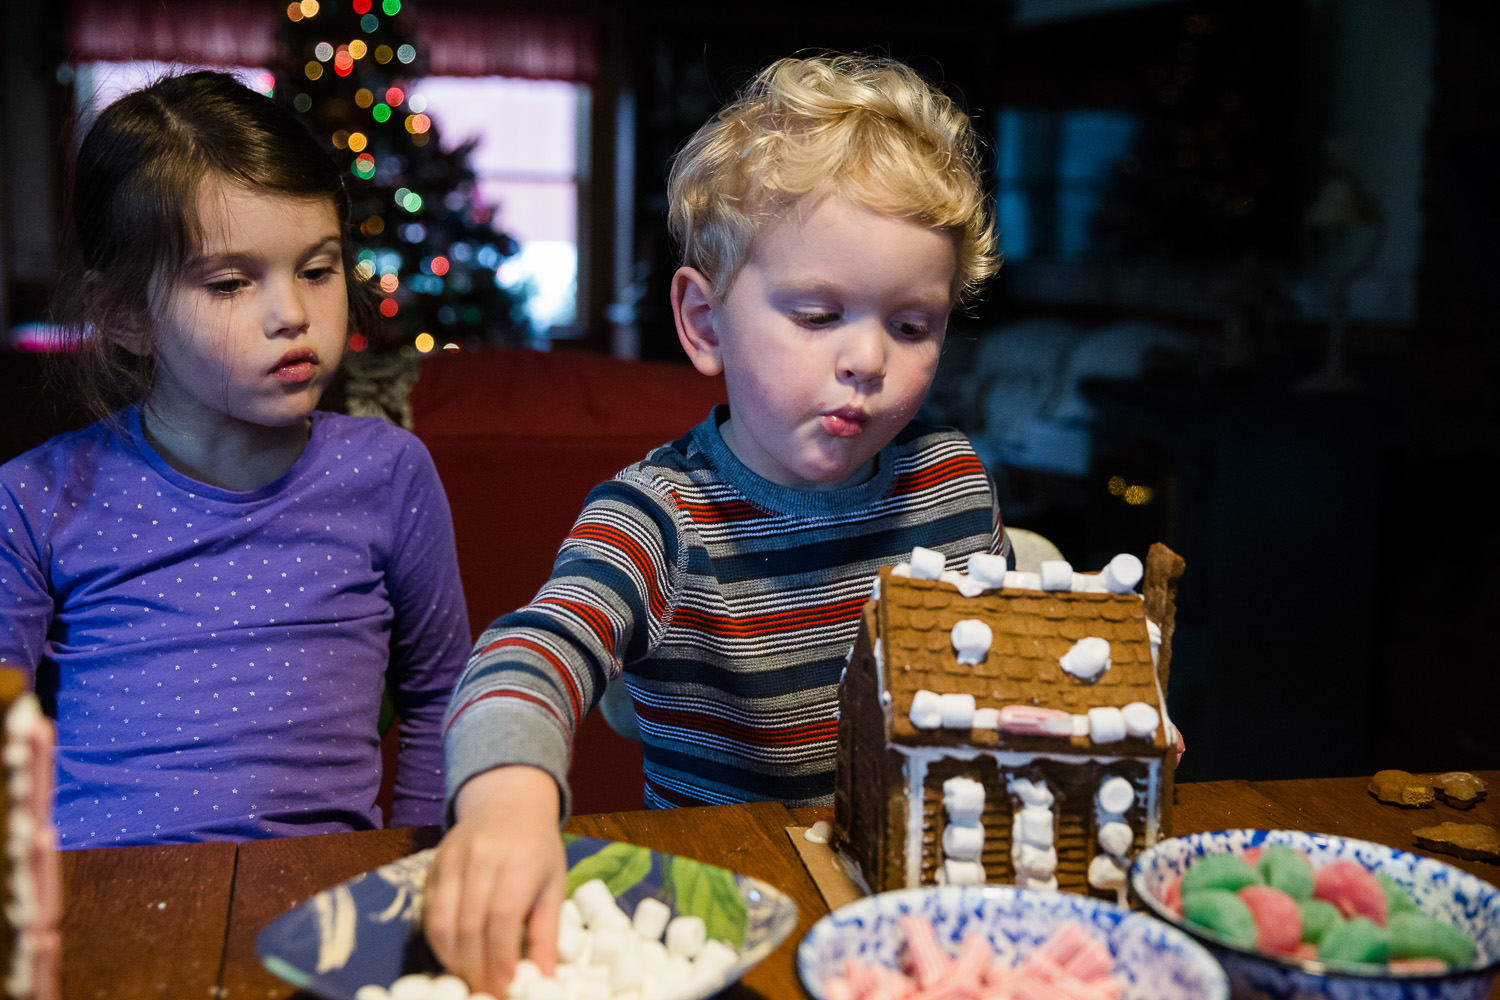 Little boy eats candy as he makes his gingerbread house.